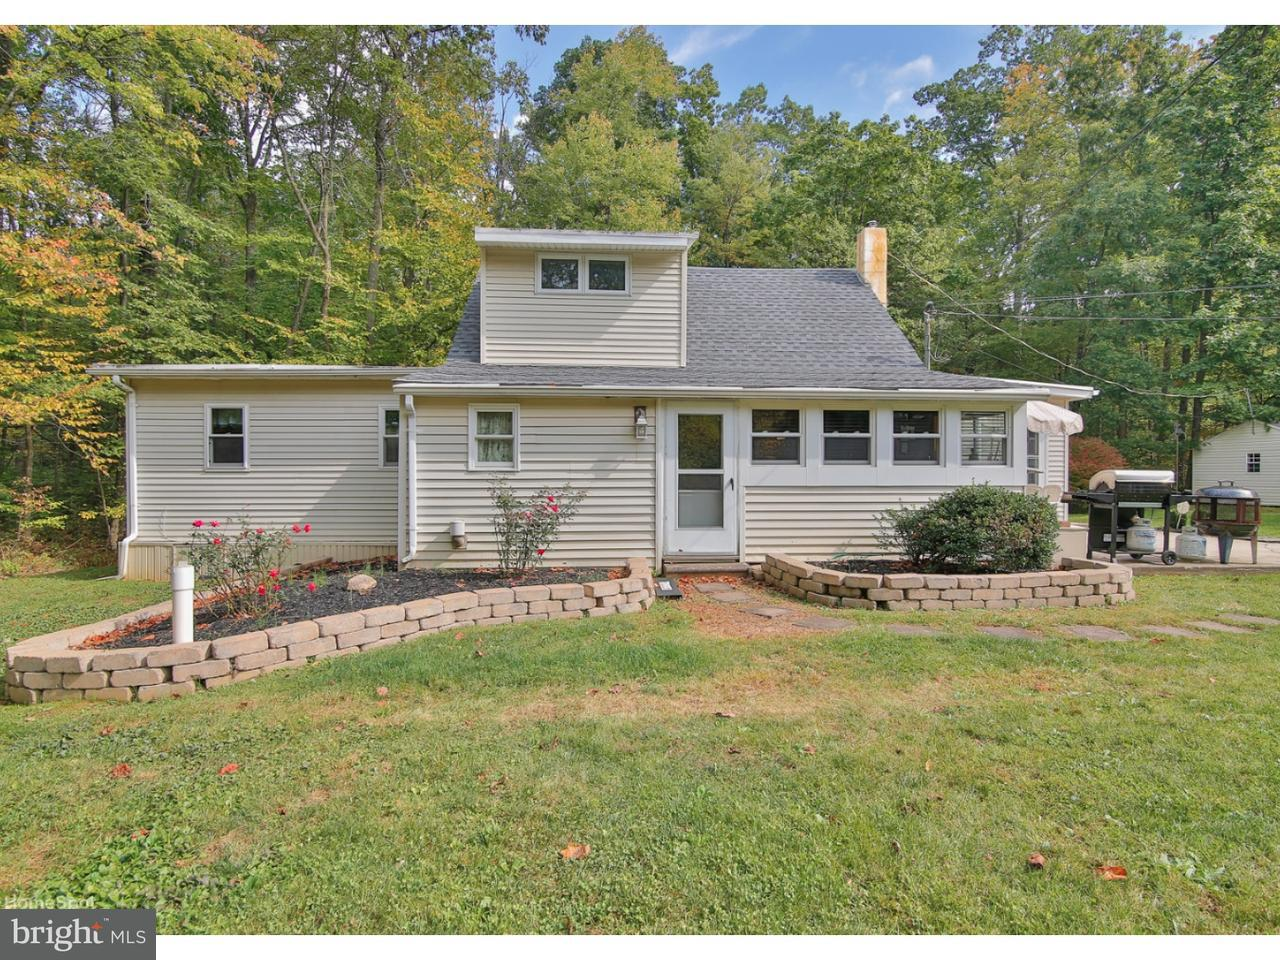 Single Family Home for Sale at 8393 HAWK VIEW Road Germansville, Pennsylvania 18053 United States